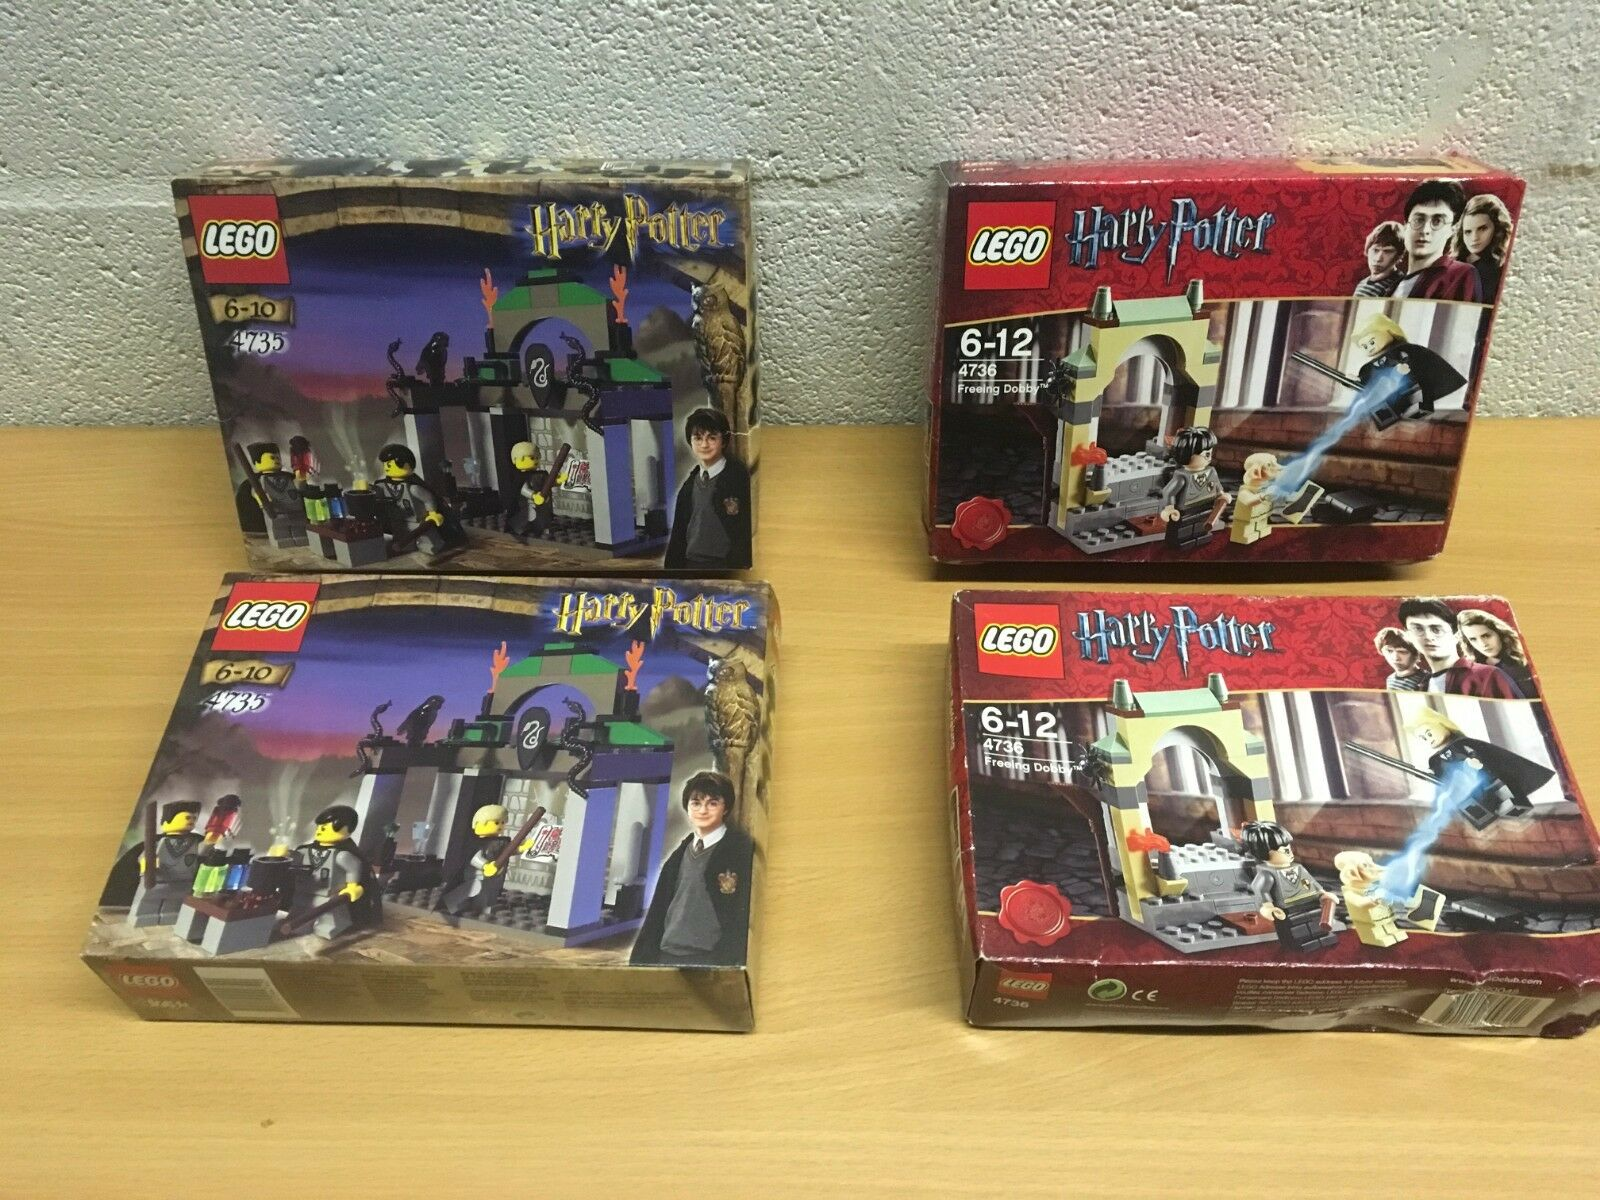 LEGO HARRY POTTER 4735 4736 NEW SEALED SLYTHERIN OR FREEING DOBBY